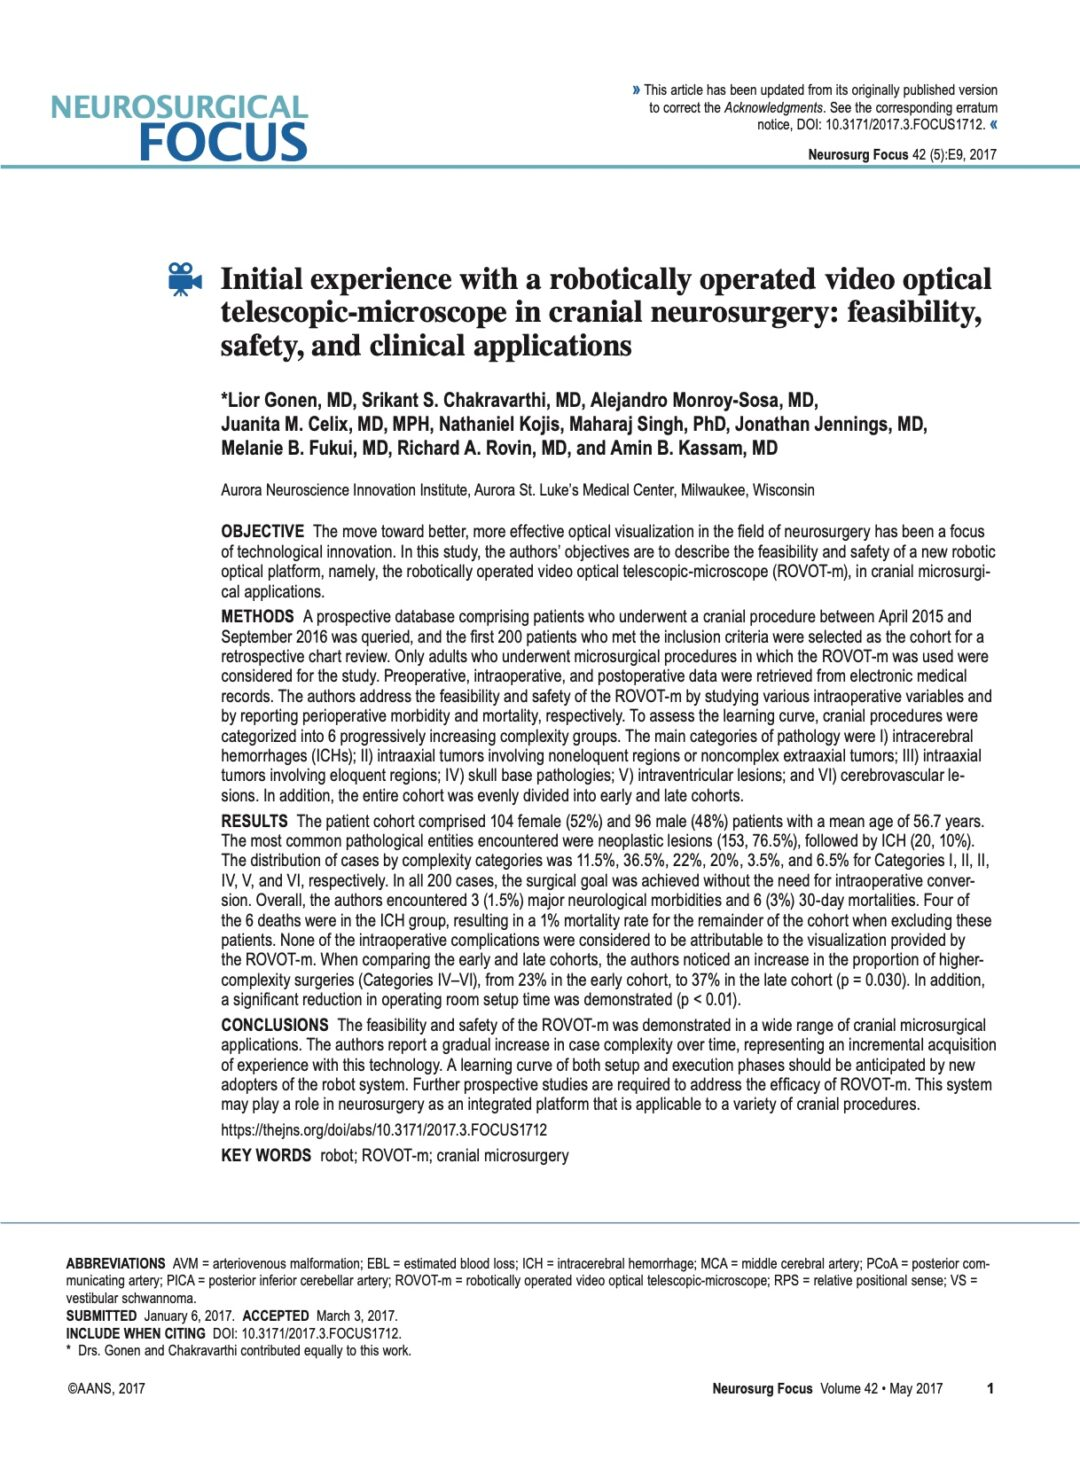 Initial experience with a robotically operated video optical telescopic-microscope in cranial neurosurgery: feasibility, safety, and clinical applications